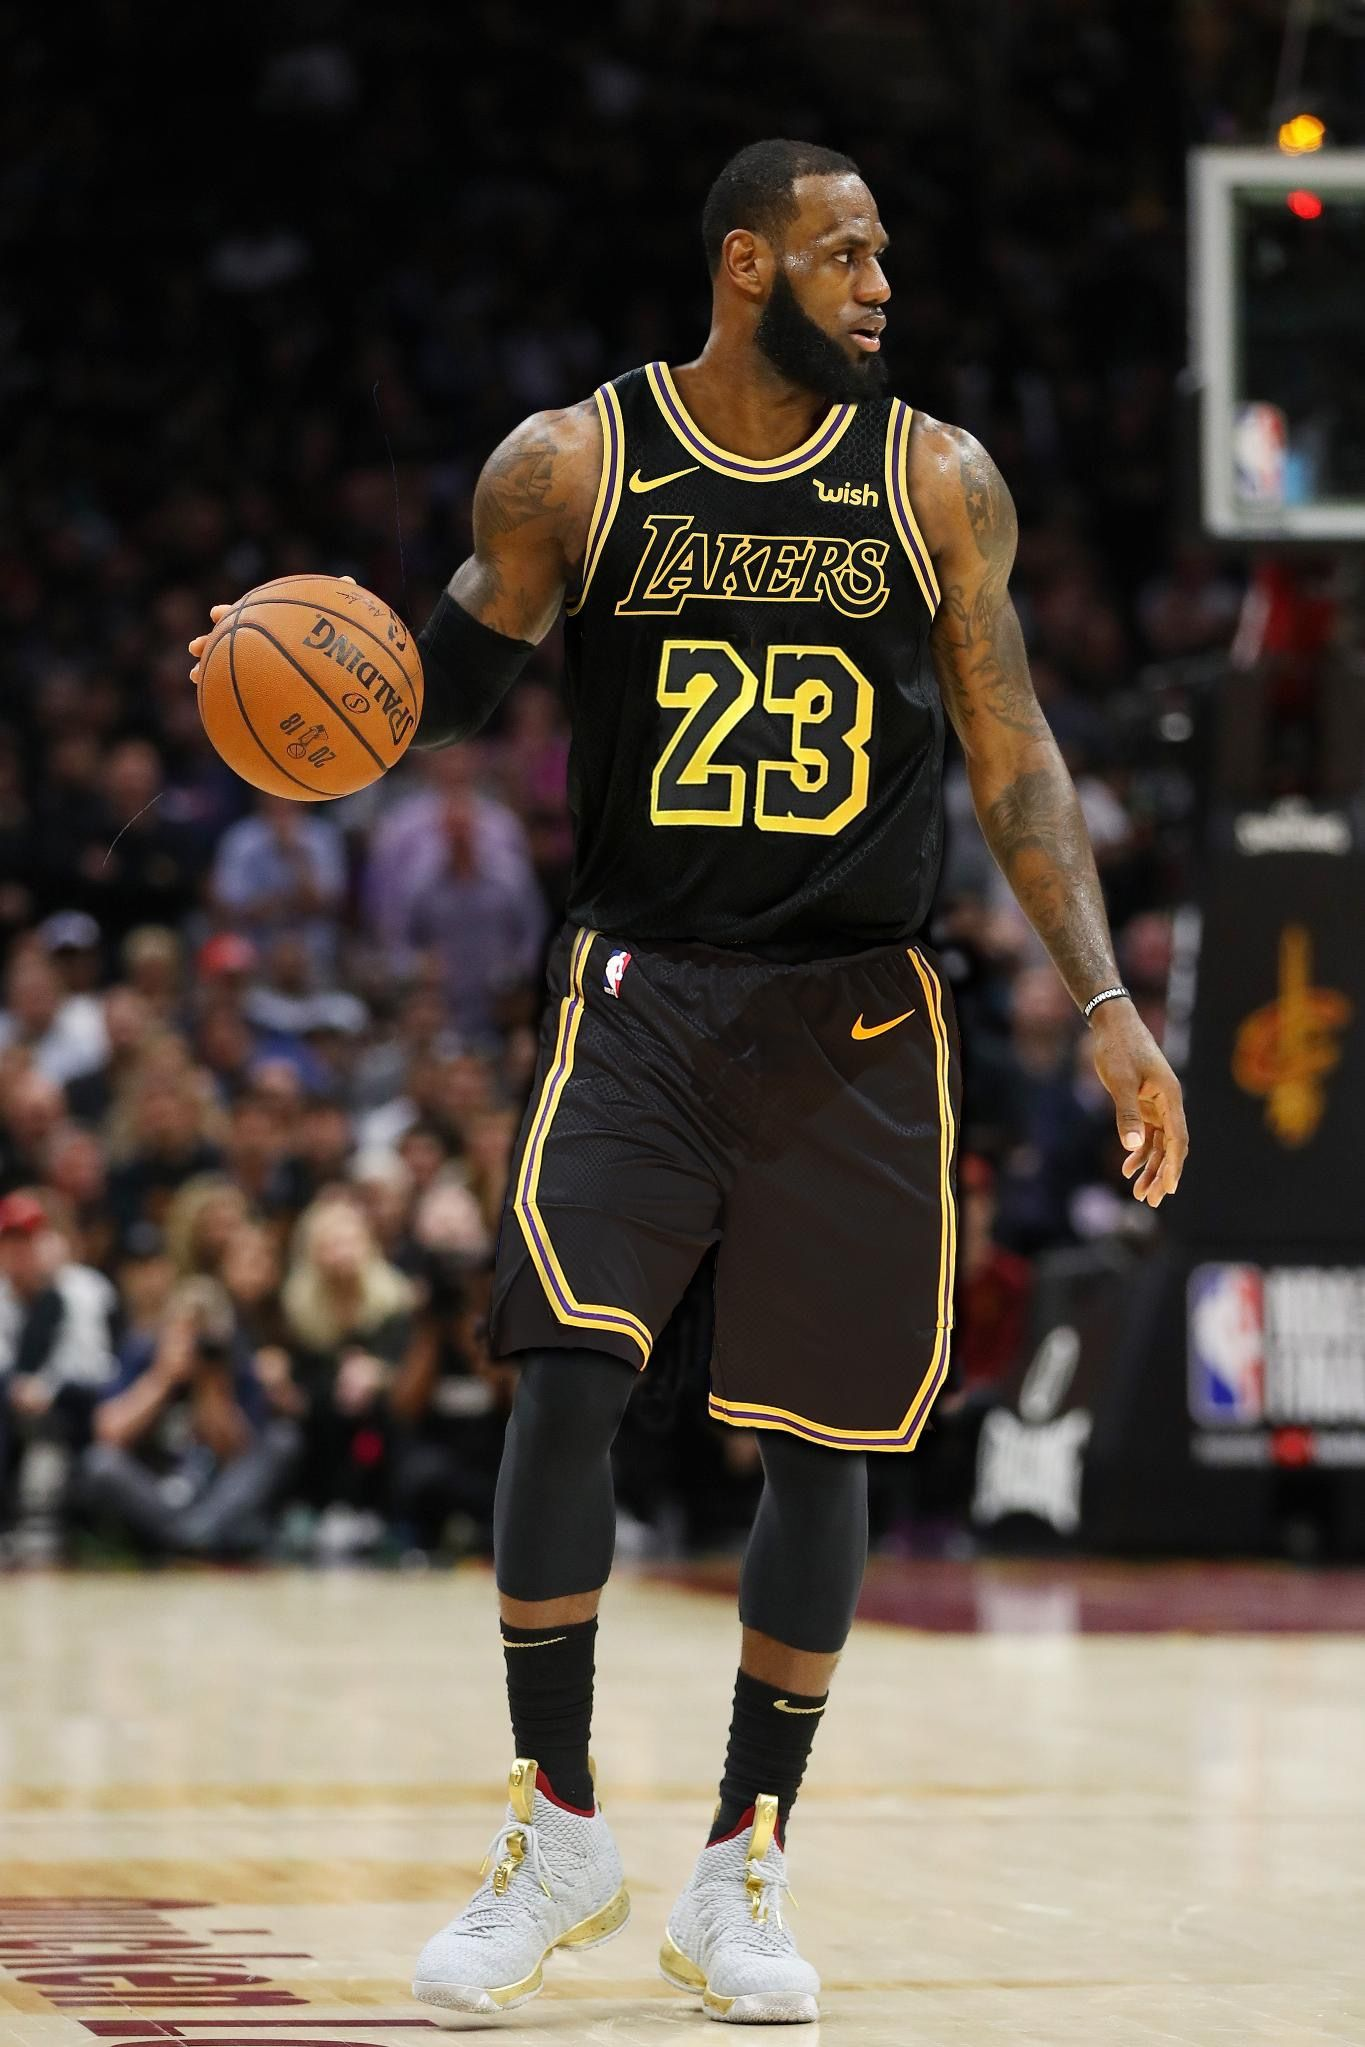 Image result for lebron james playing on black lakers jersey